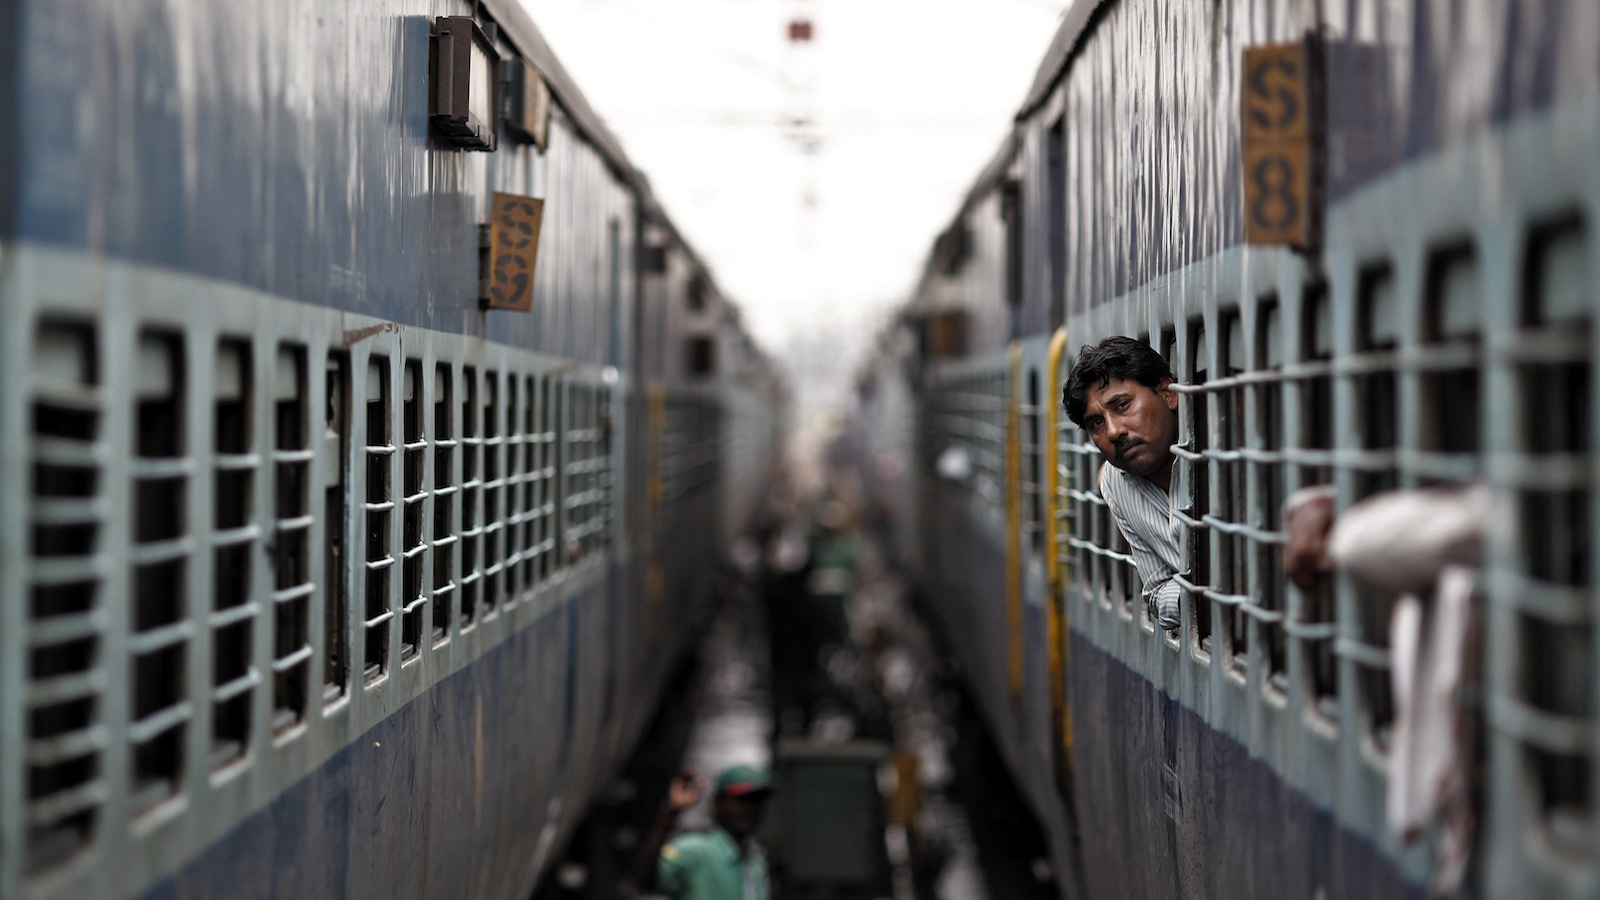 A passenger looks through the window of a train as he waits for electricity to be restored at a railway station in New Delhi July 31, 2012. Grid failure hit India for a second day on Tuesday, cutting power to hundreds of millions of people in the populous northern and eastern states including the capital Delhi and major cities such as Kolkata. REUTERS/Adnan Abidi